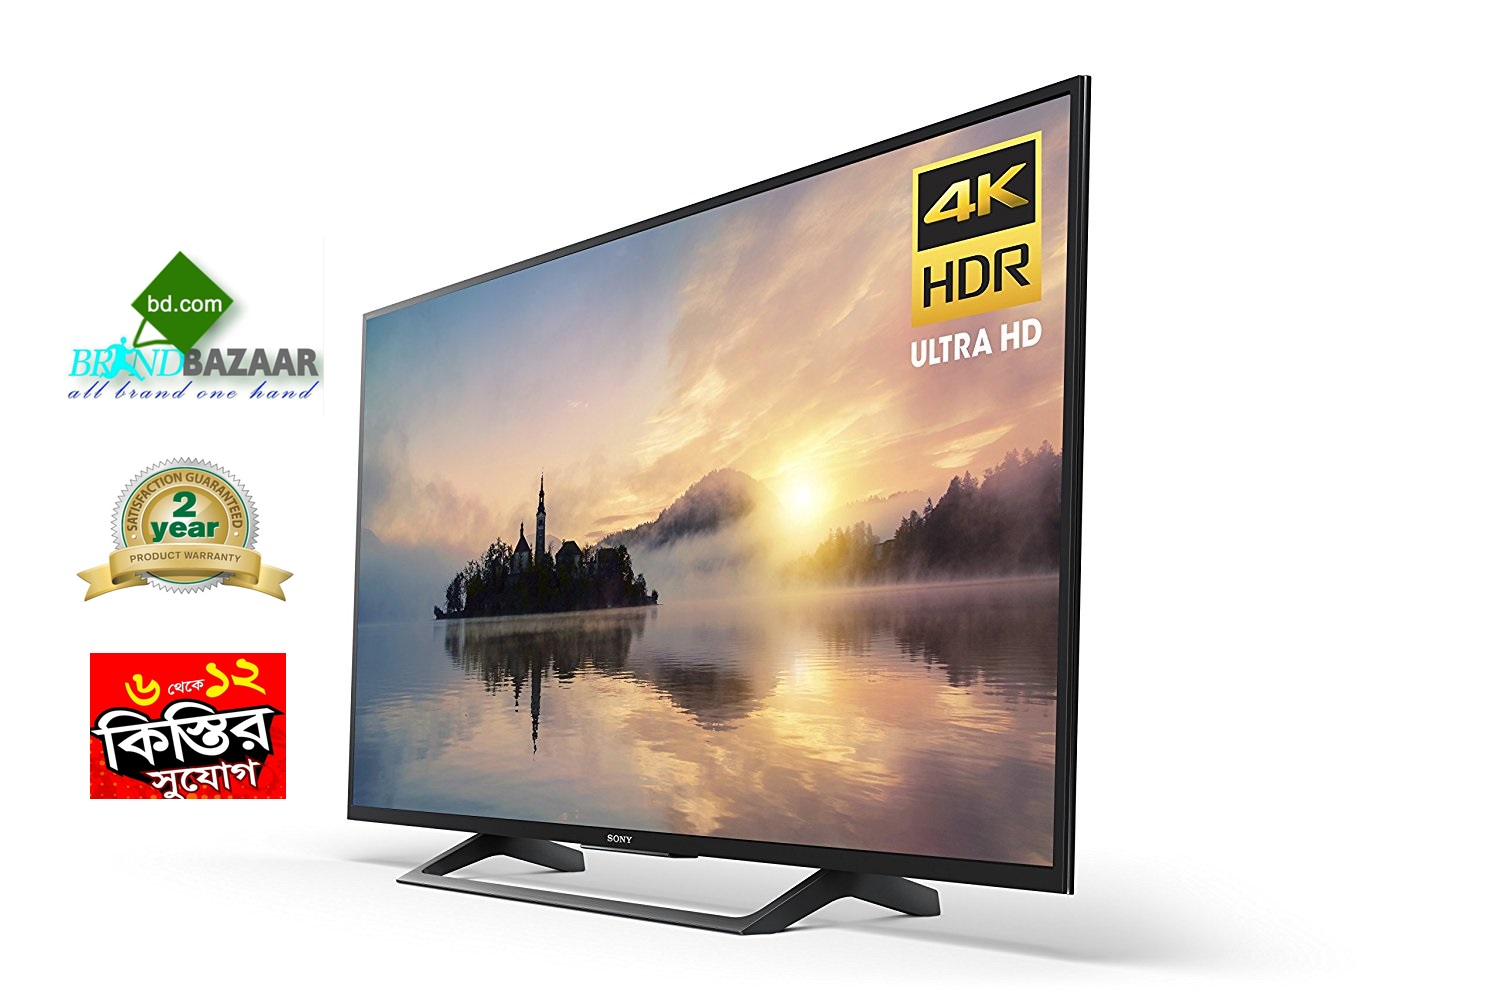 sony 4k smart tv price in bangladesh sony kd43x7000e 43. Black Bedroom Furniture Sets. Home Design Ideas